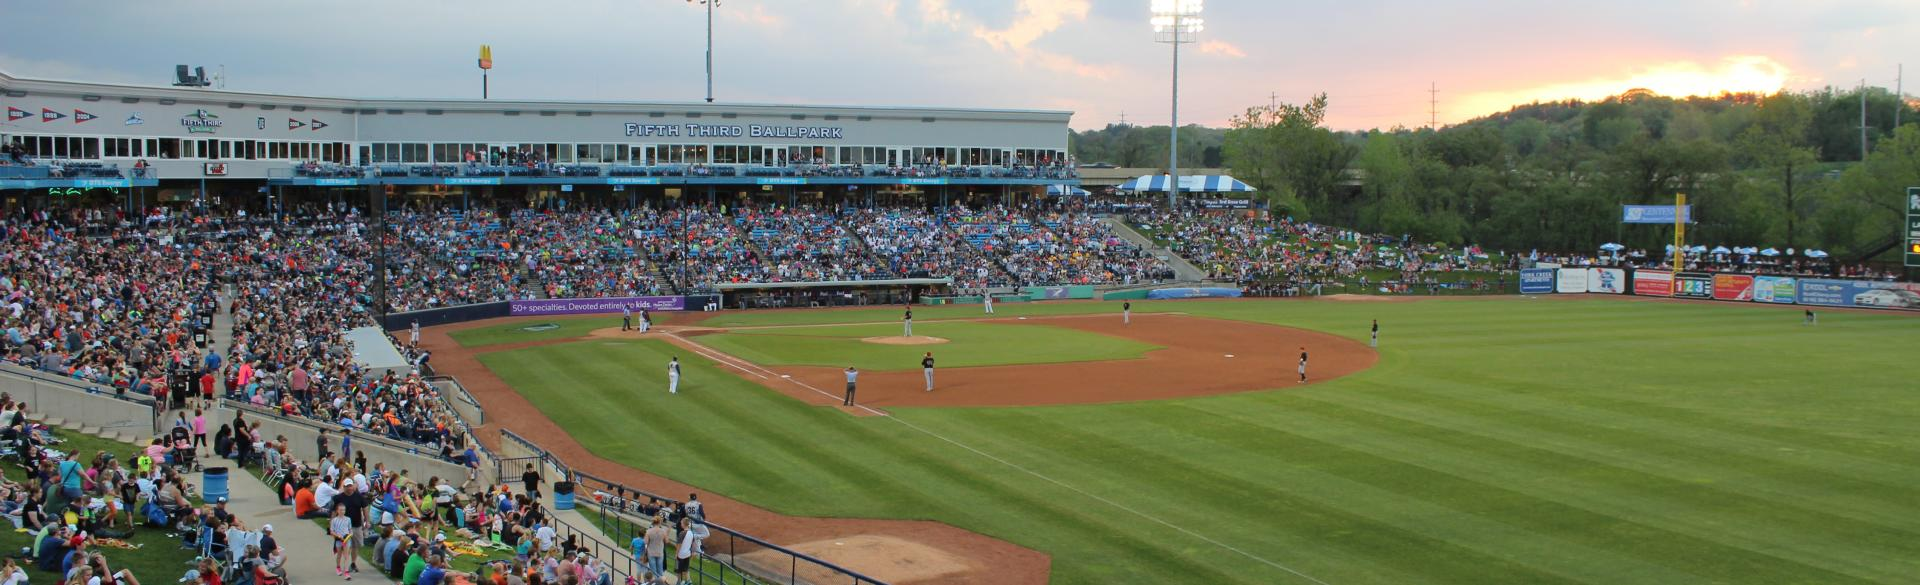 It's not summer until you catch a baseball game at the ballpark!